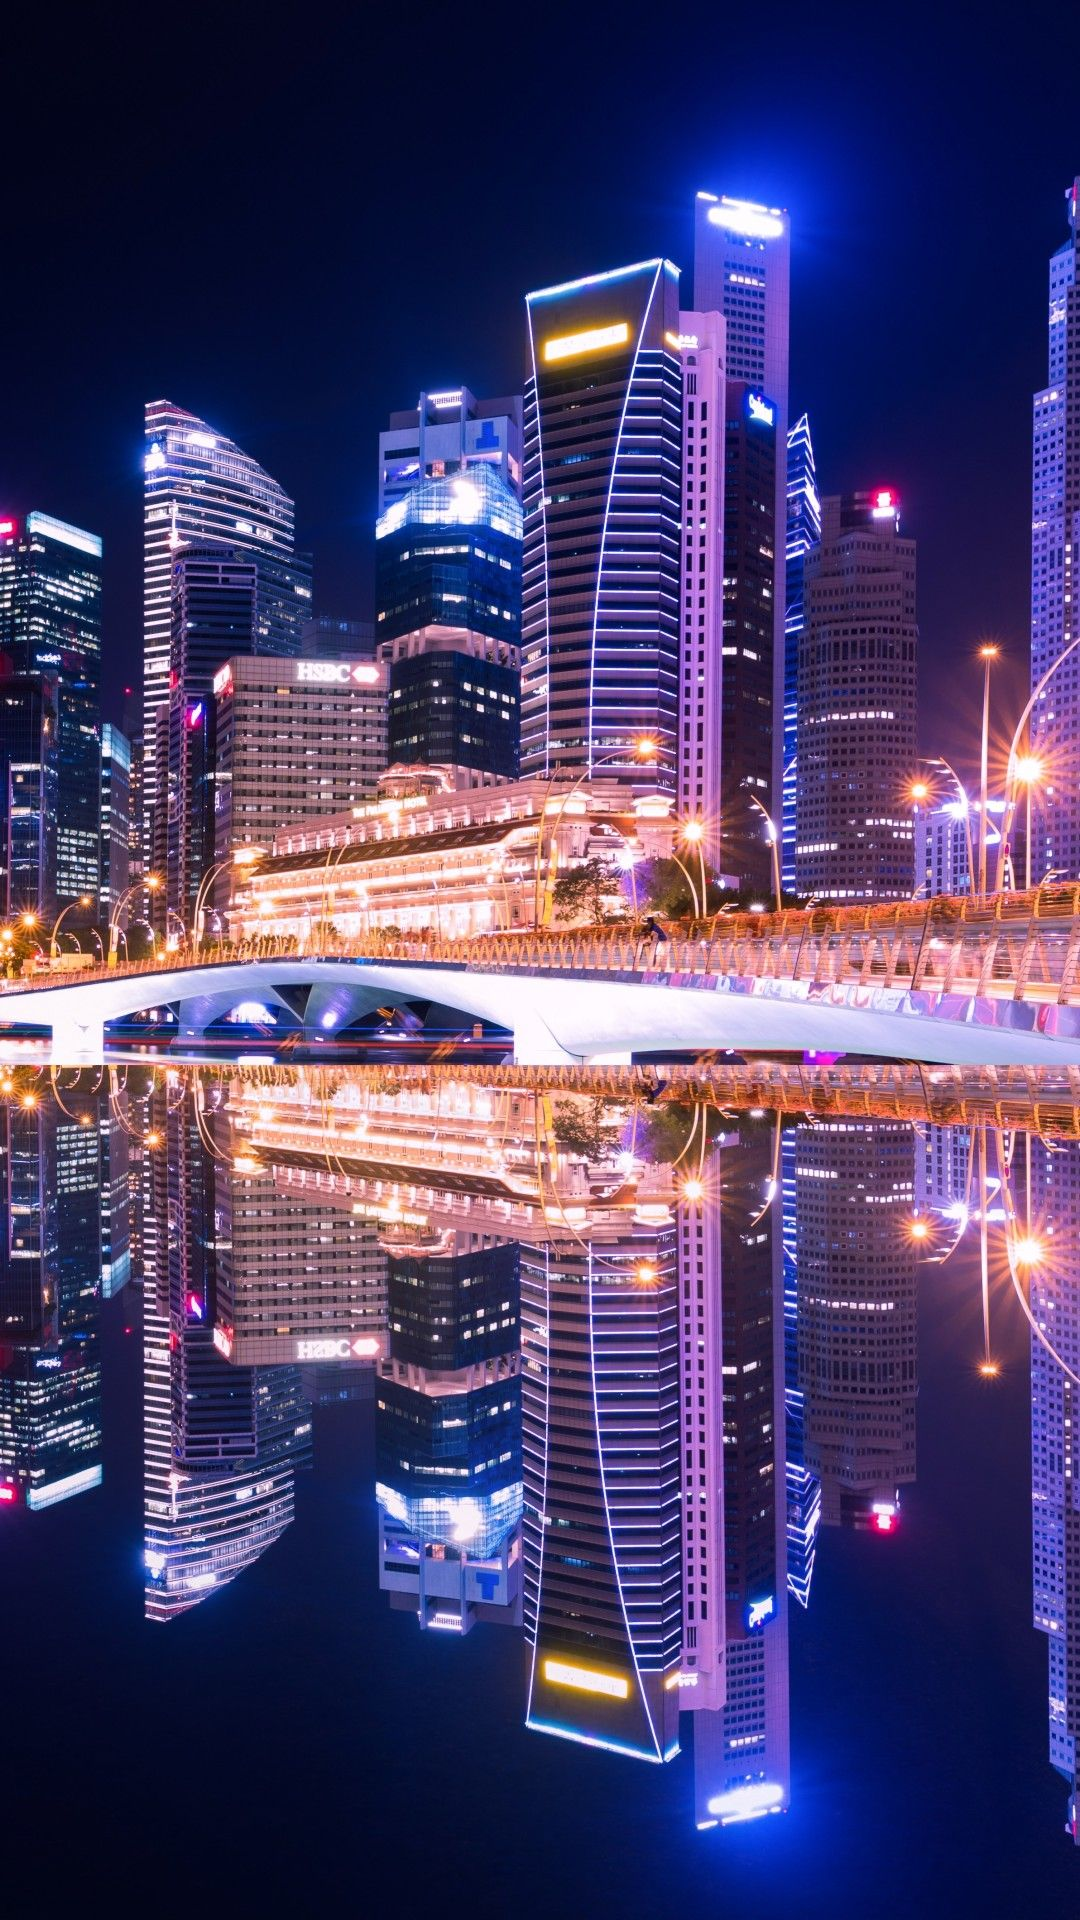 Singapore City Skyline 5k Mobile Wallpaper Iphone Android Samsung Pixel Xiaomi In 2020 City Lights Wallpaper City Aesthetic City Wallpaper